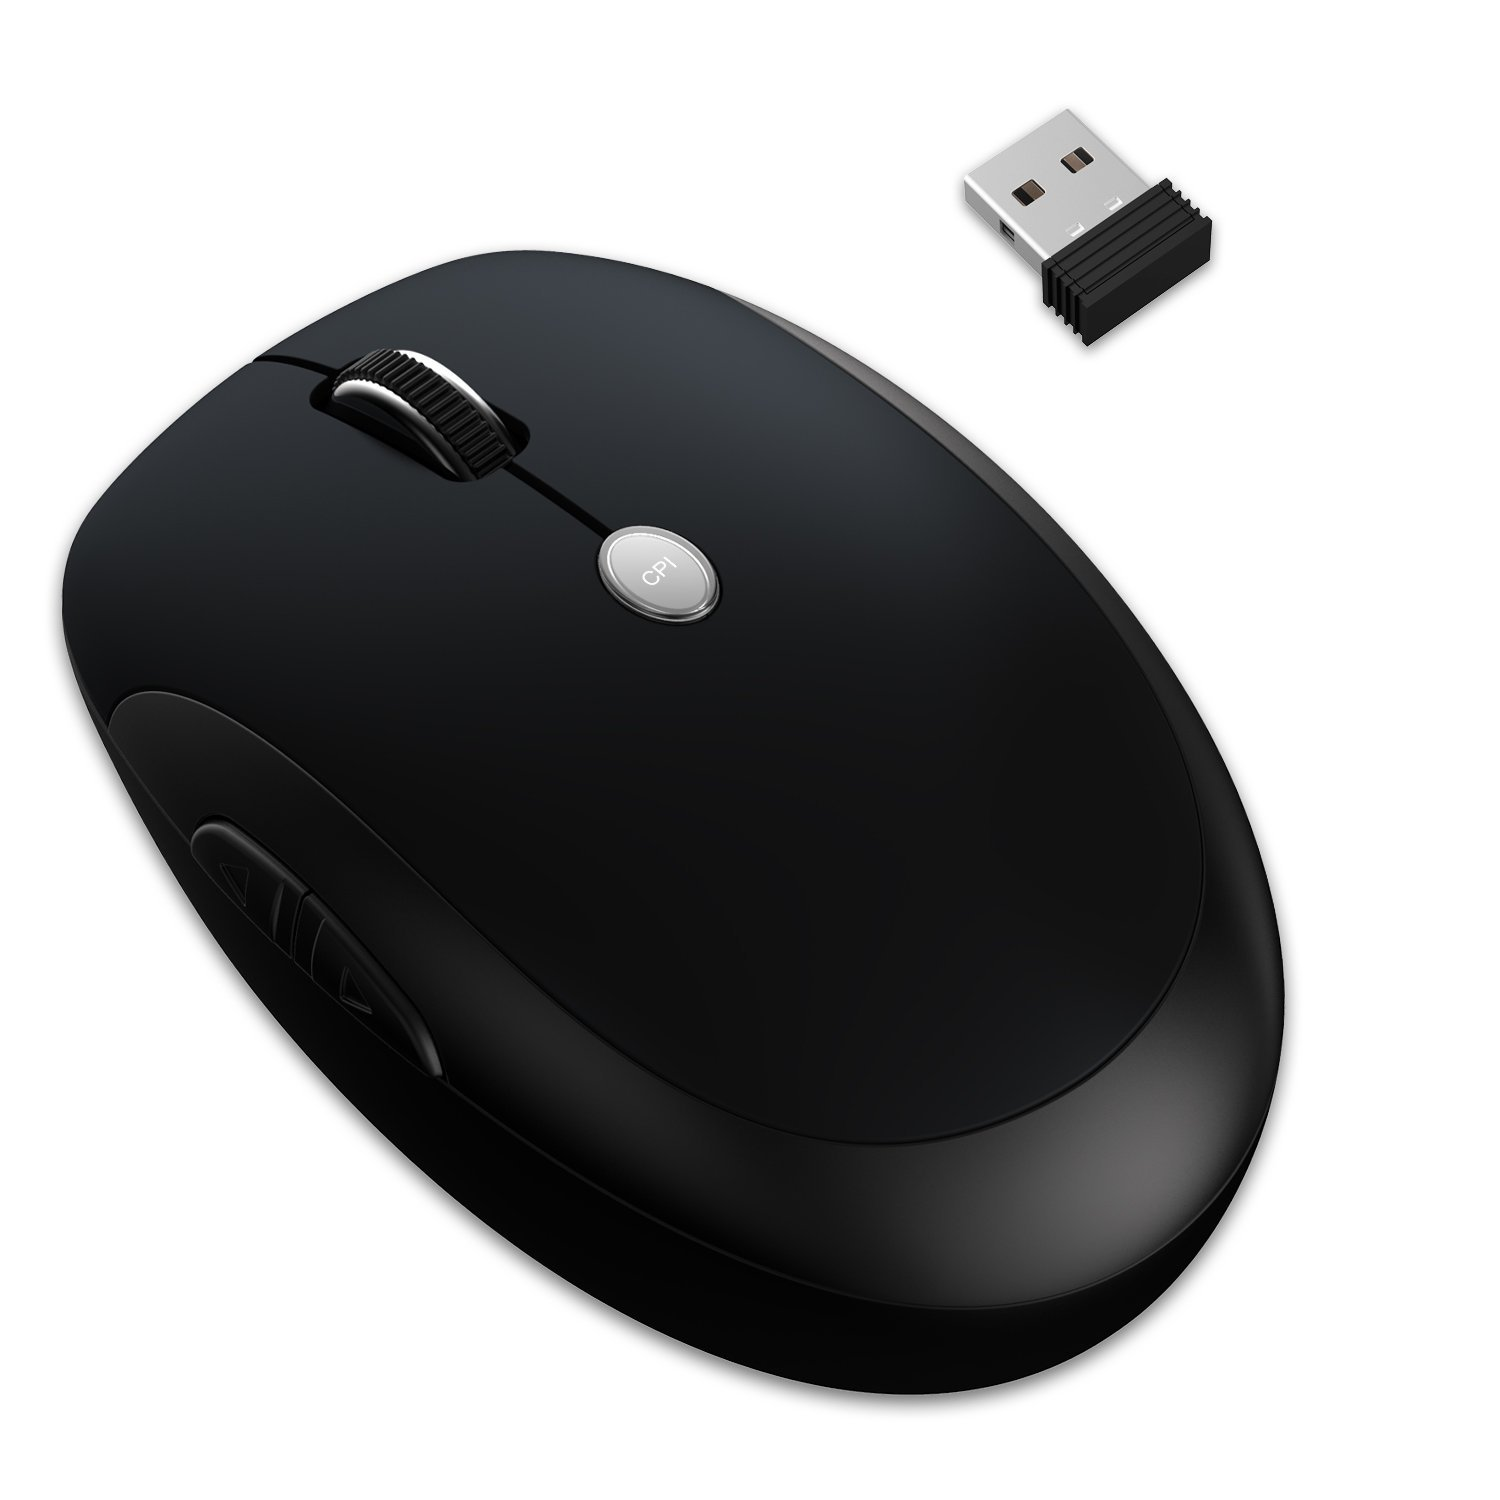 JETech M0886 2.4Ghz Wireless Mobile Optical Mouse w/6-Month Battery Life - Black 30%OFF